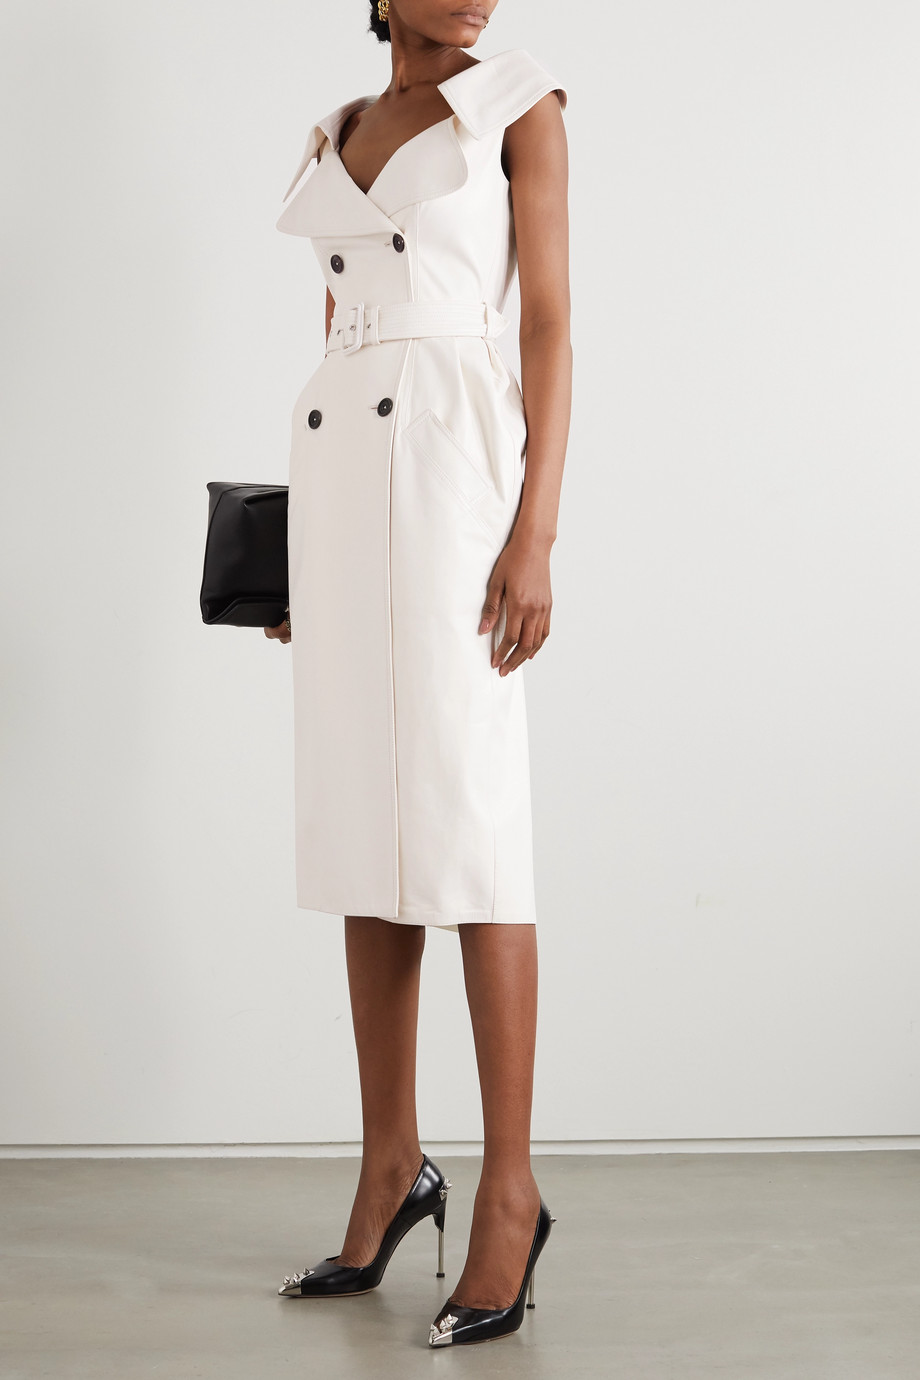 ALEXANDER MCQUEEN Belted double-breasted leather midi dress